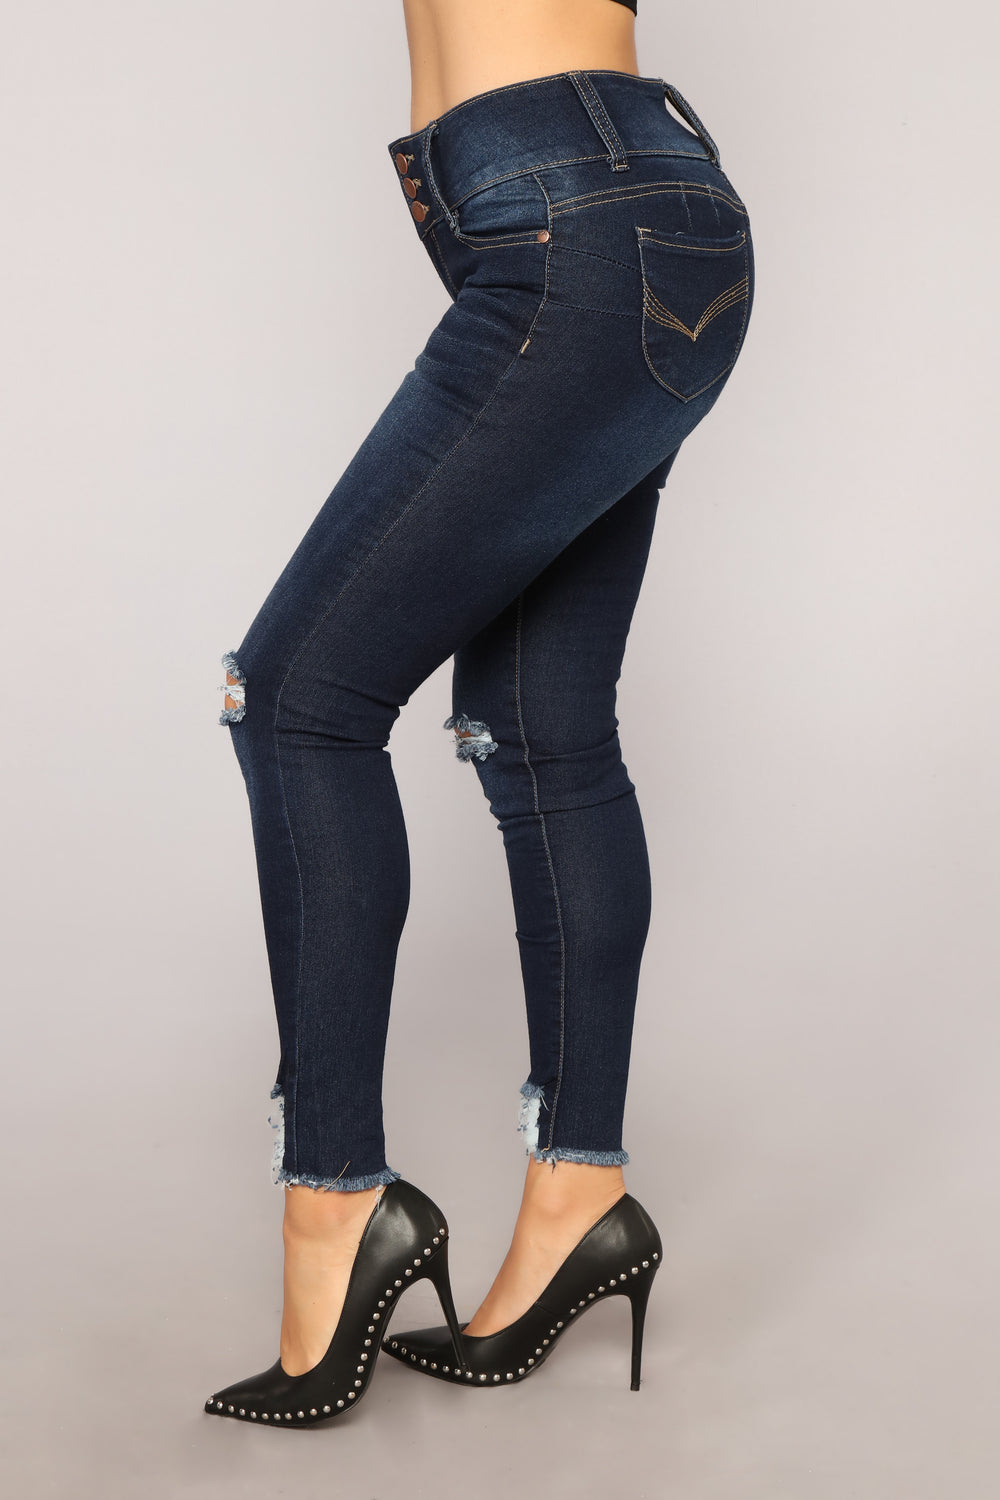 Not A Side Chick Distressed Jeans - Dark Denim